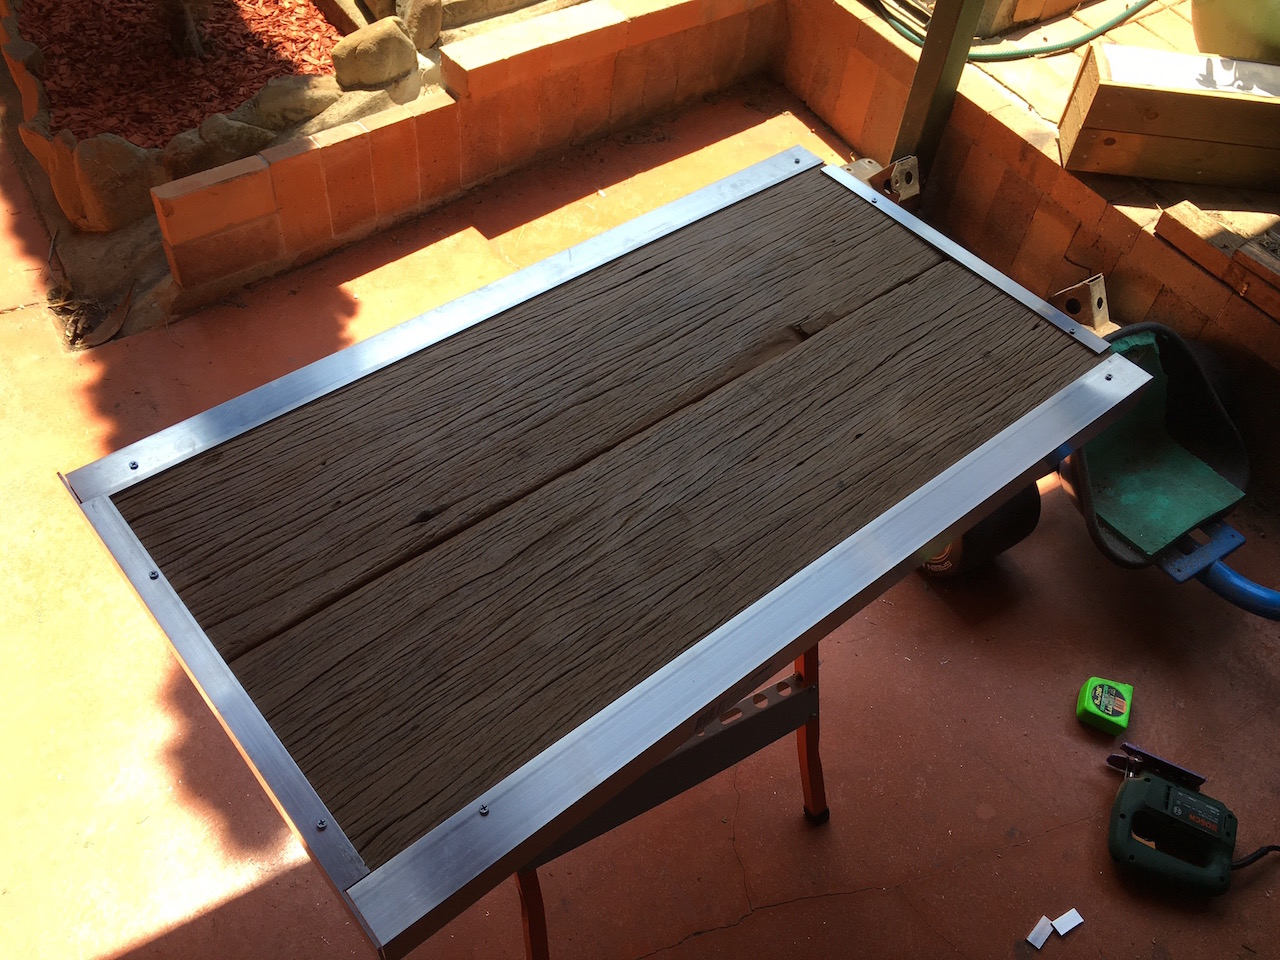 Superb img of DIY Hardwood Coffee Table made out of recycled wood (part 2) Igor's  with #BD990E color and 1280x960 pixels